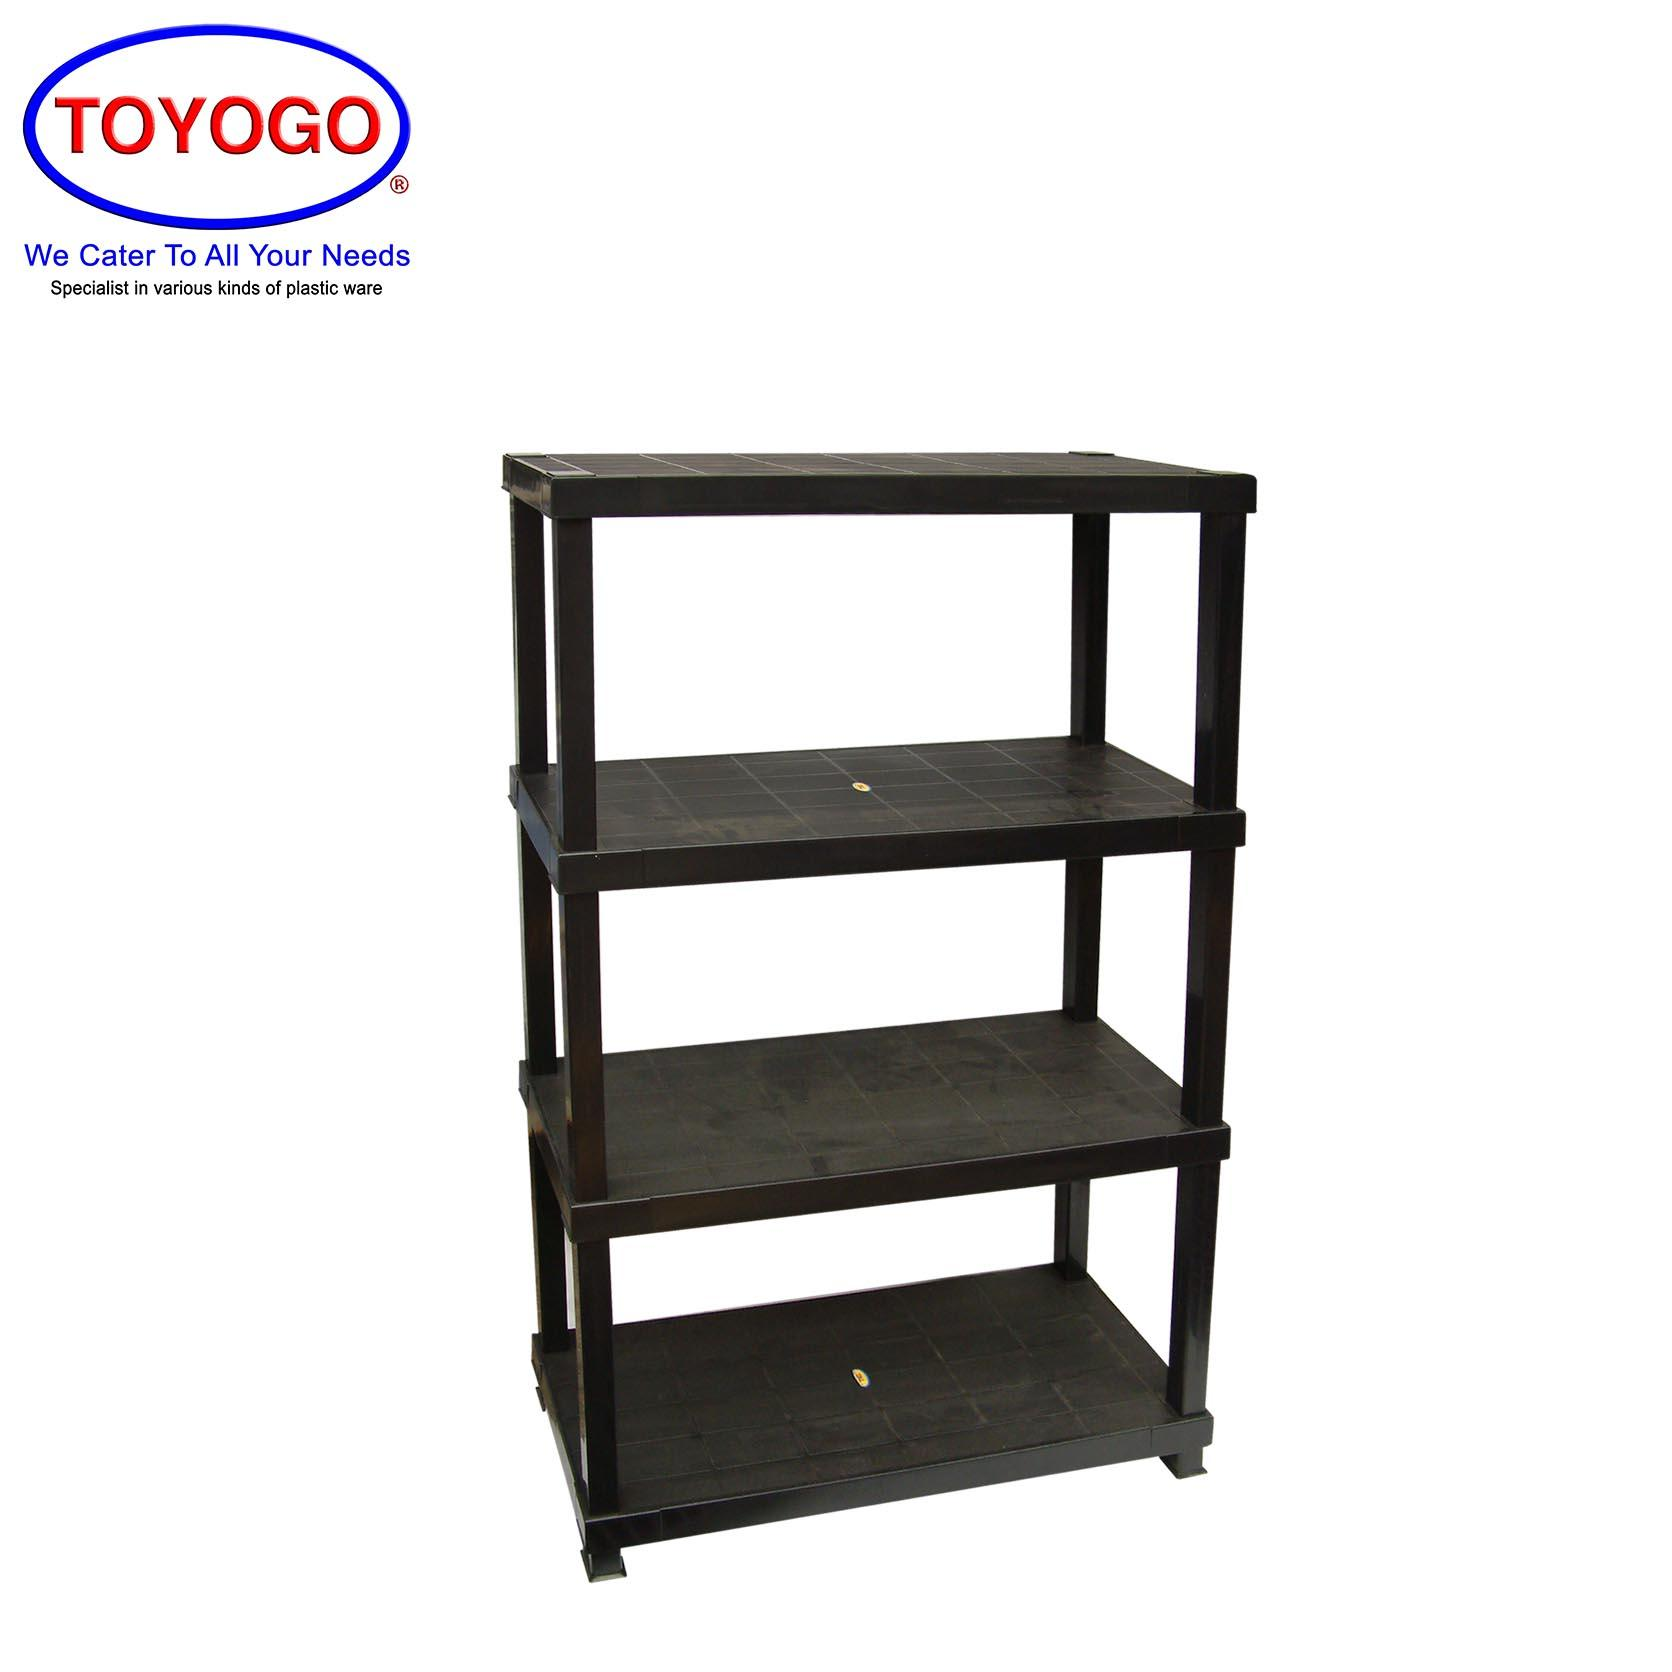 Toyogo Multi Function DIY Shelving Rack System (4 Tier) (887-4)